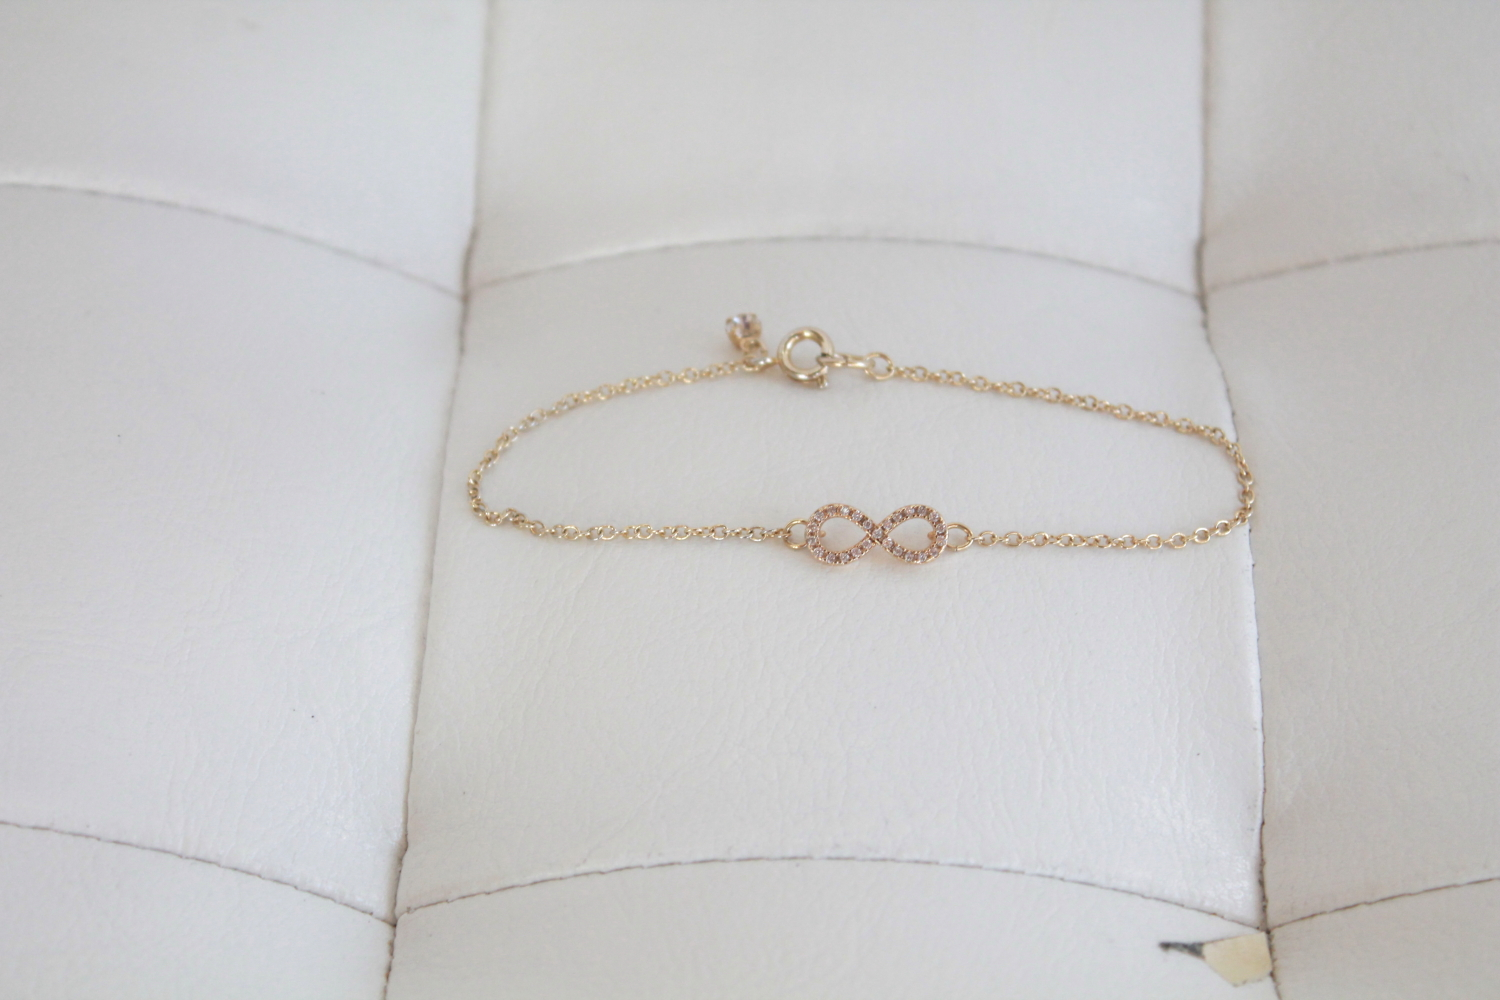 The infamous Sophie Harper Infinity Bracelet that inspired the whole set.